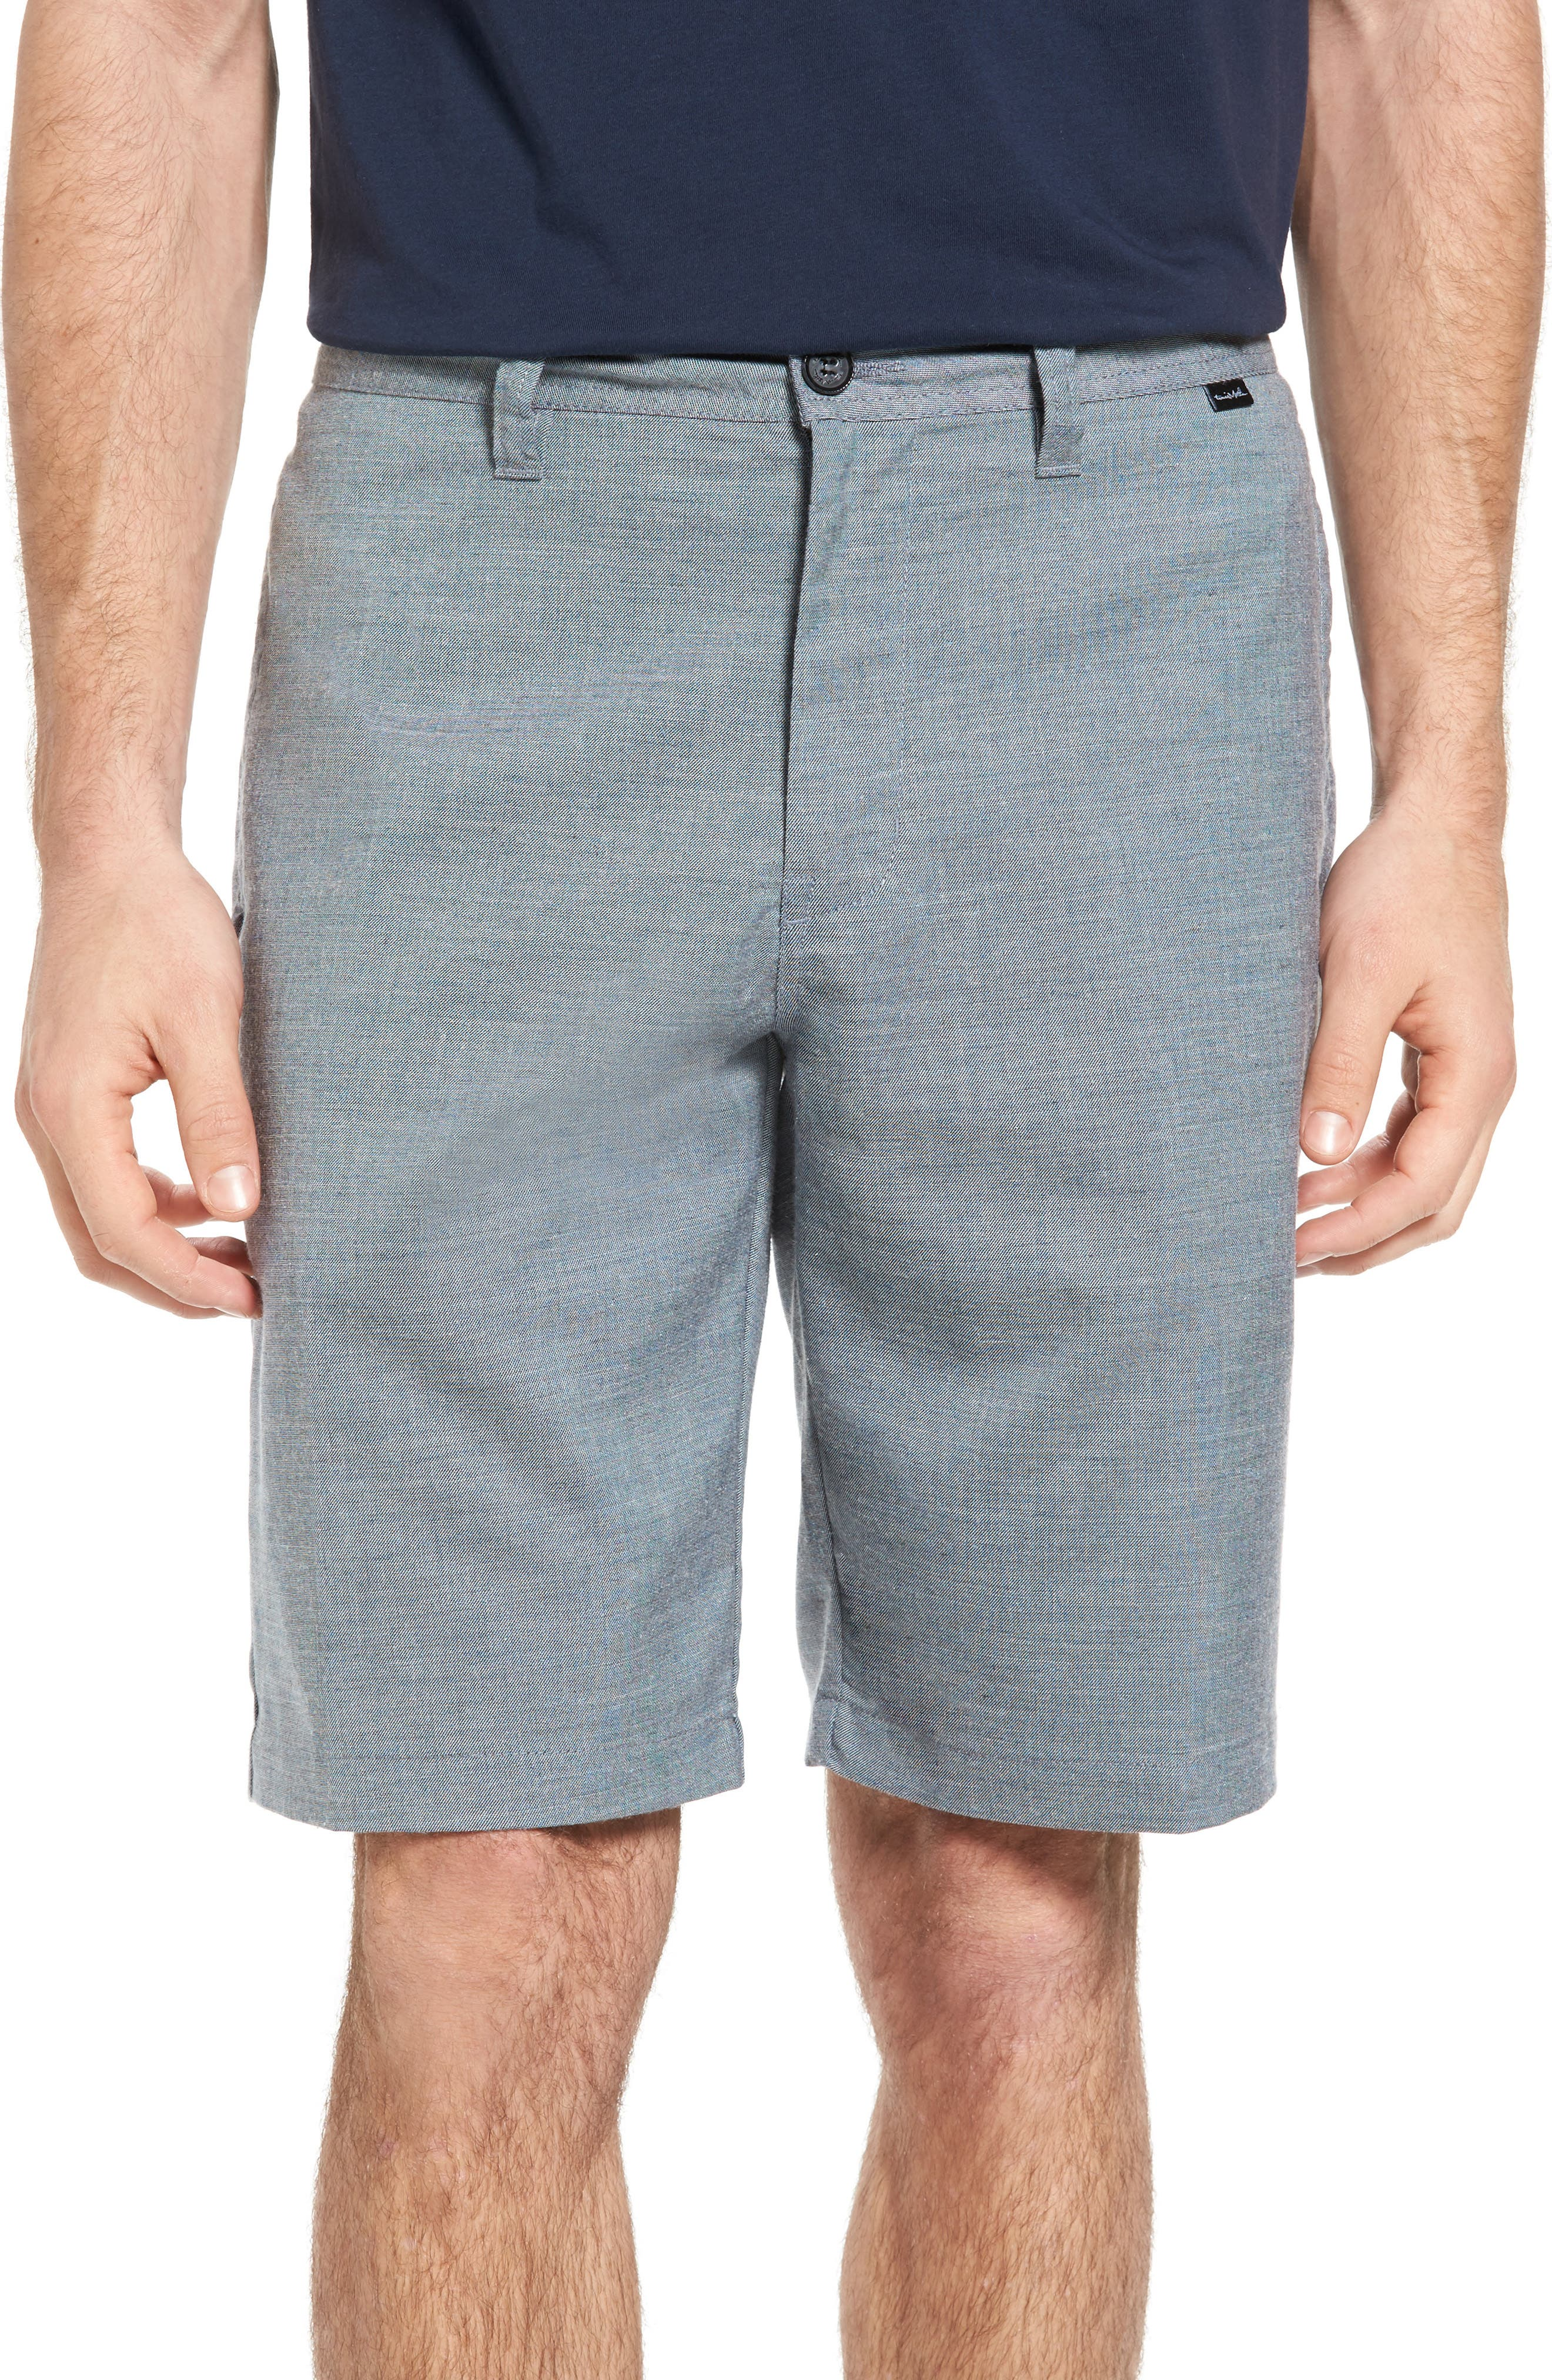 Romers Stretch Shorts,                         Main,                         color, 020